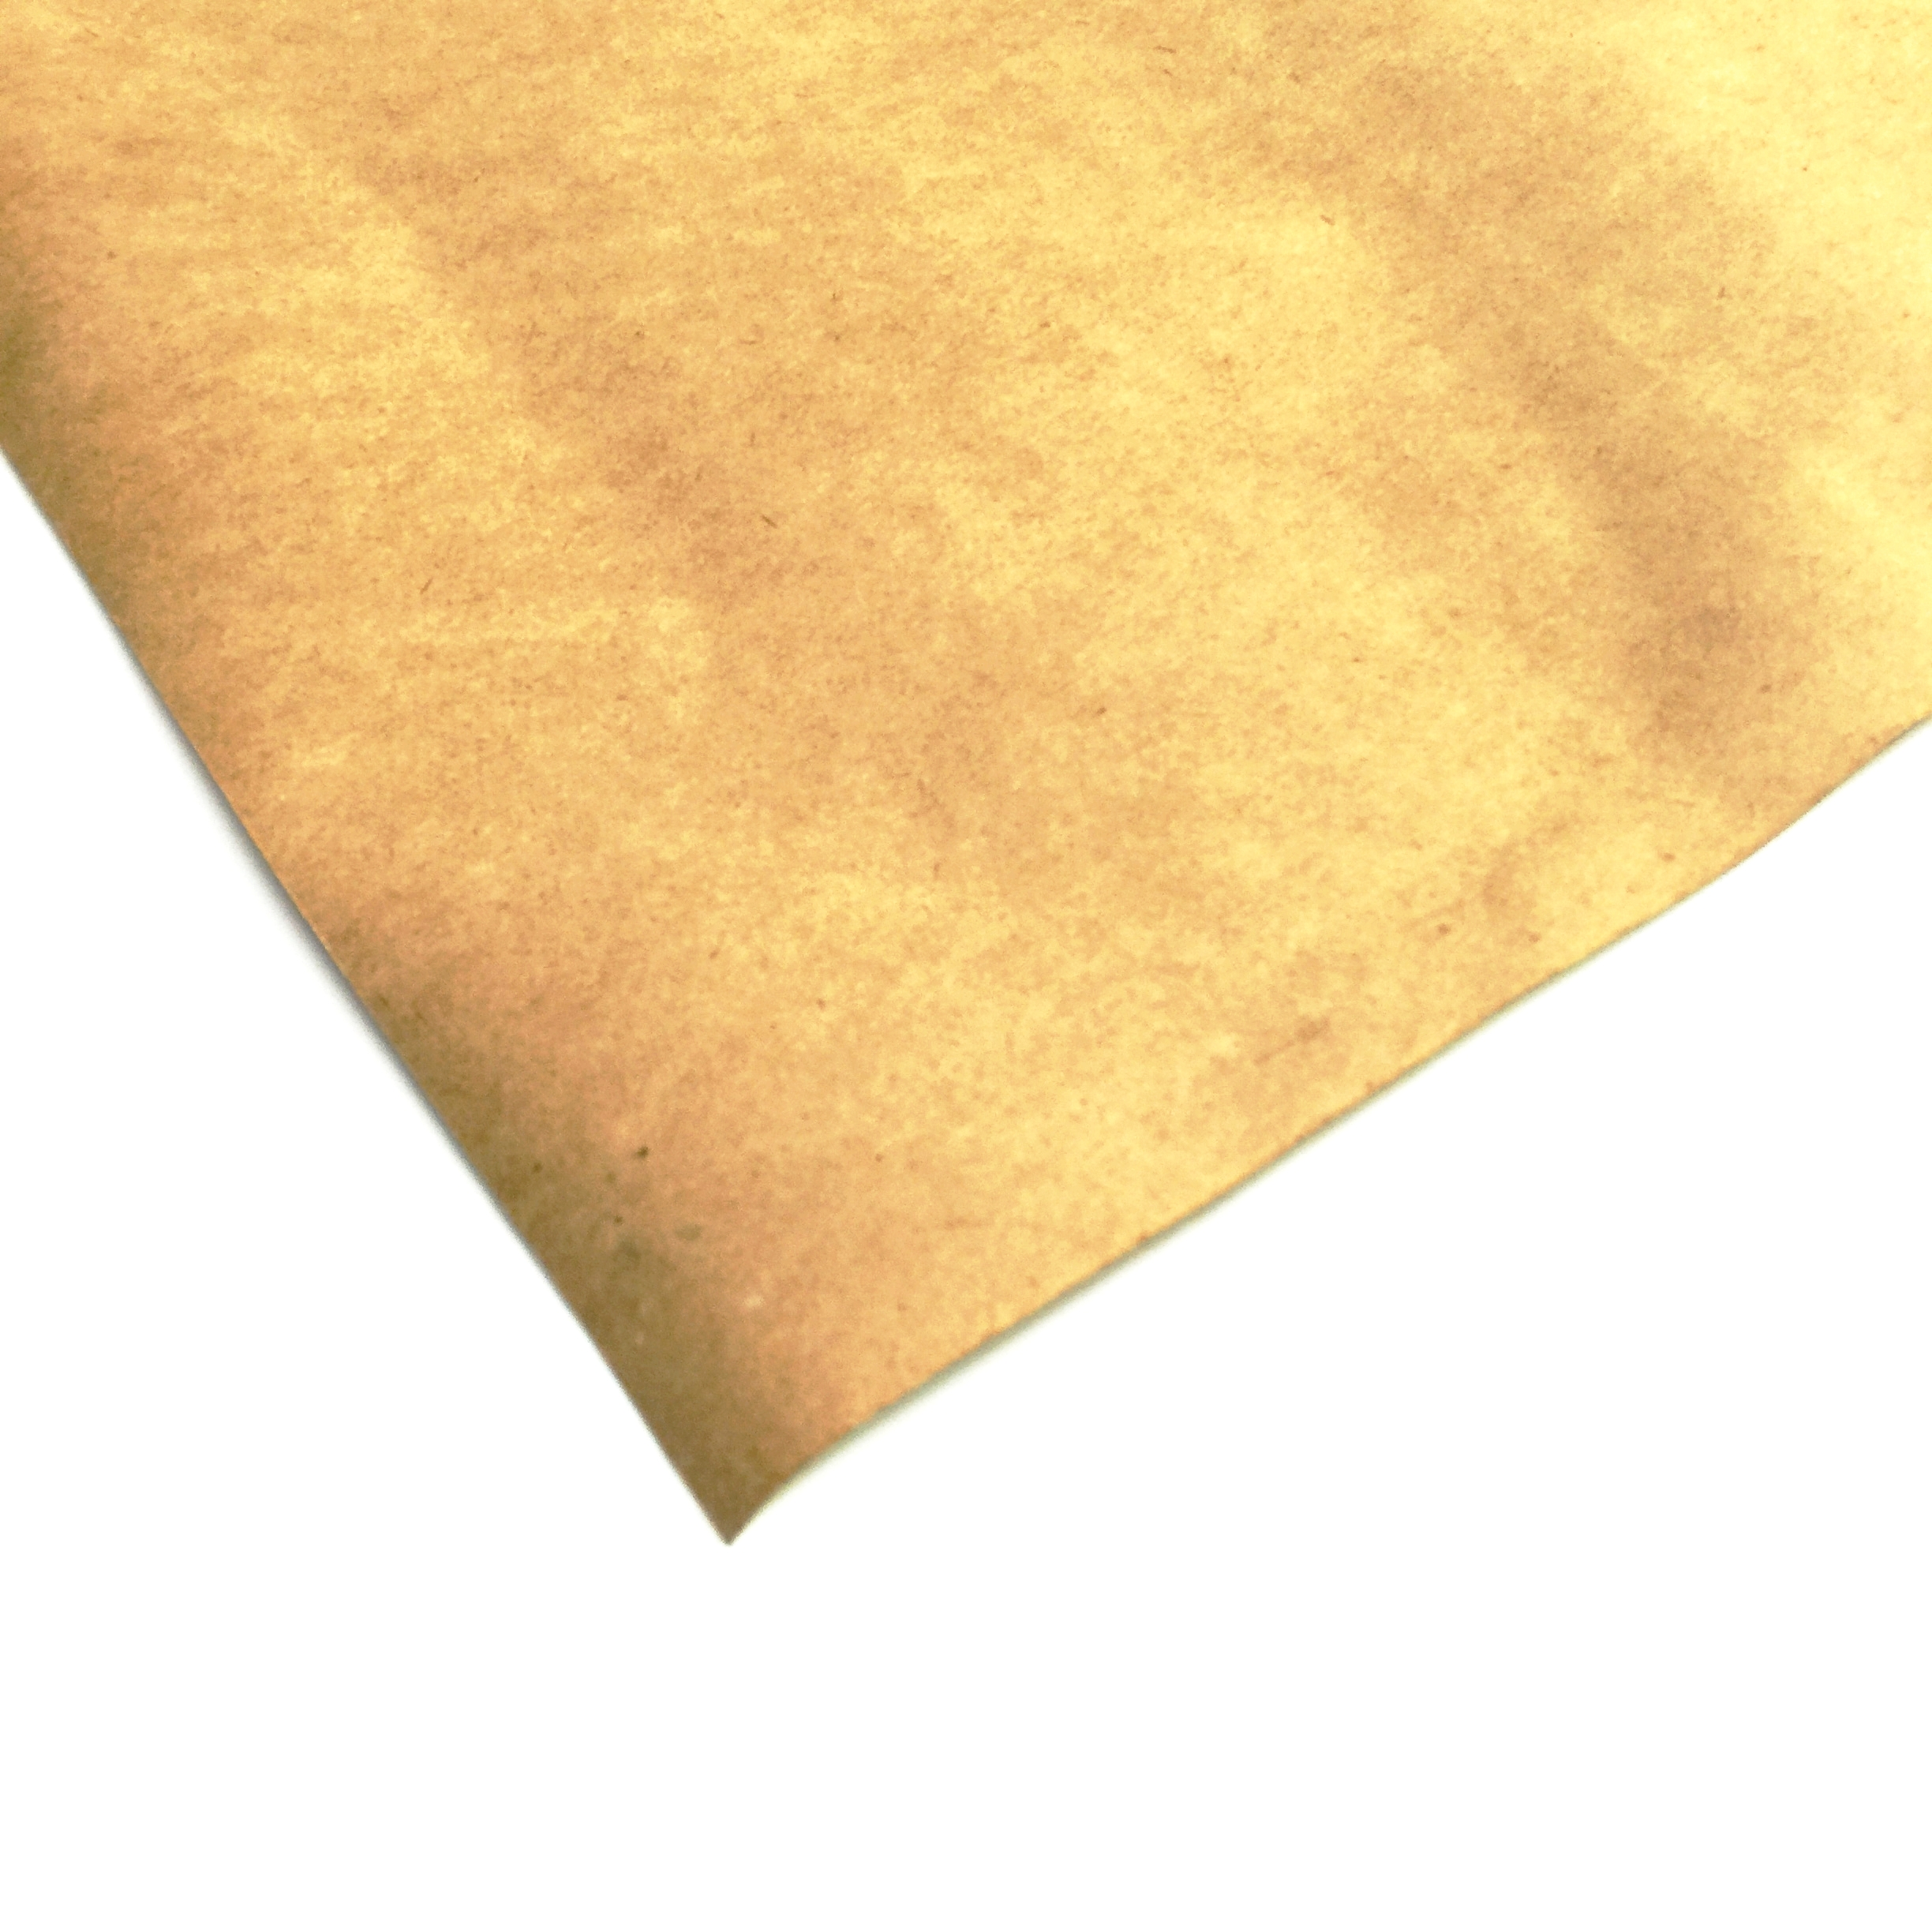 Oil Paper / Vegetable Fiber